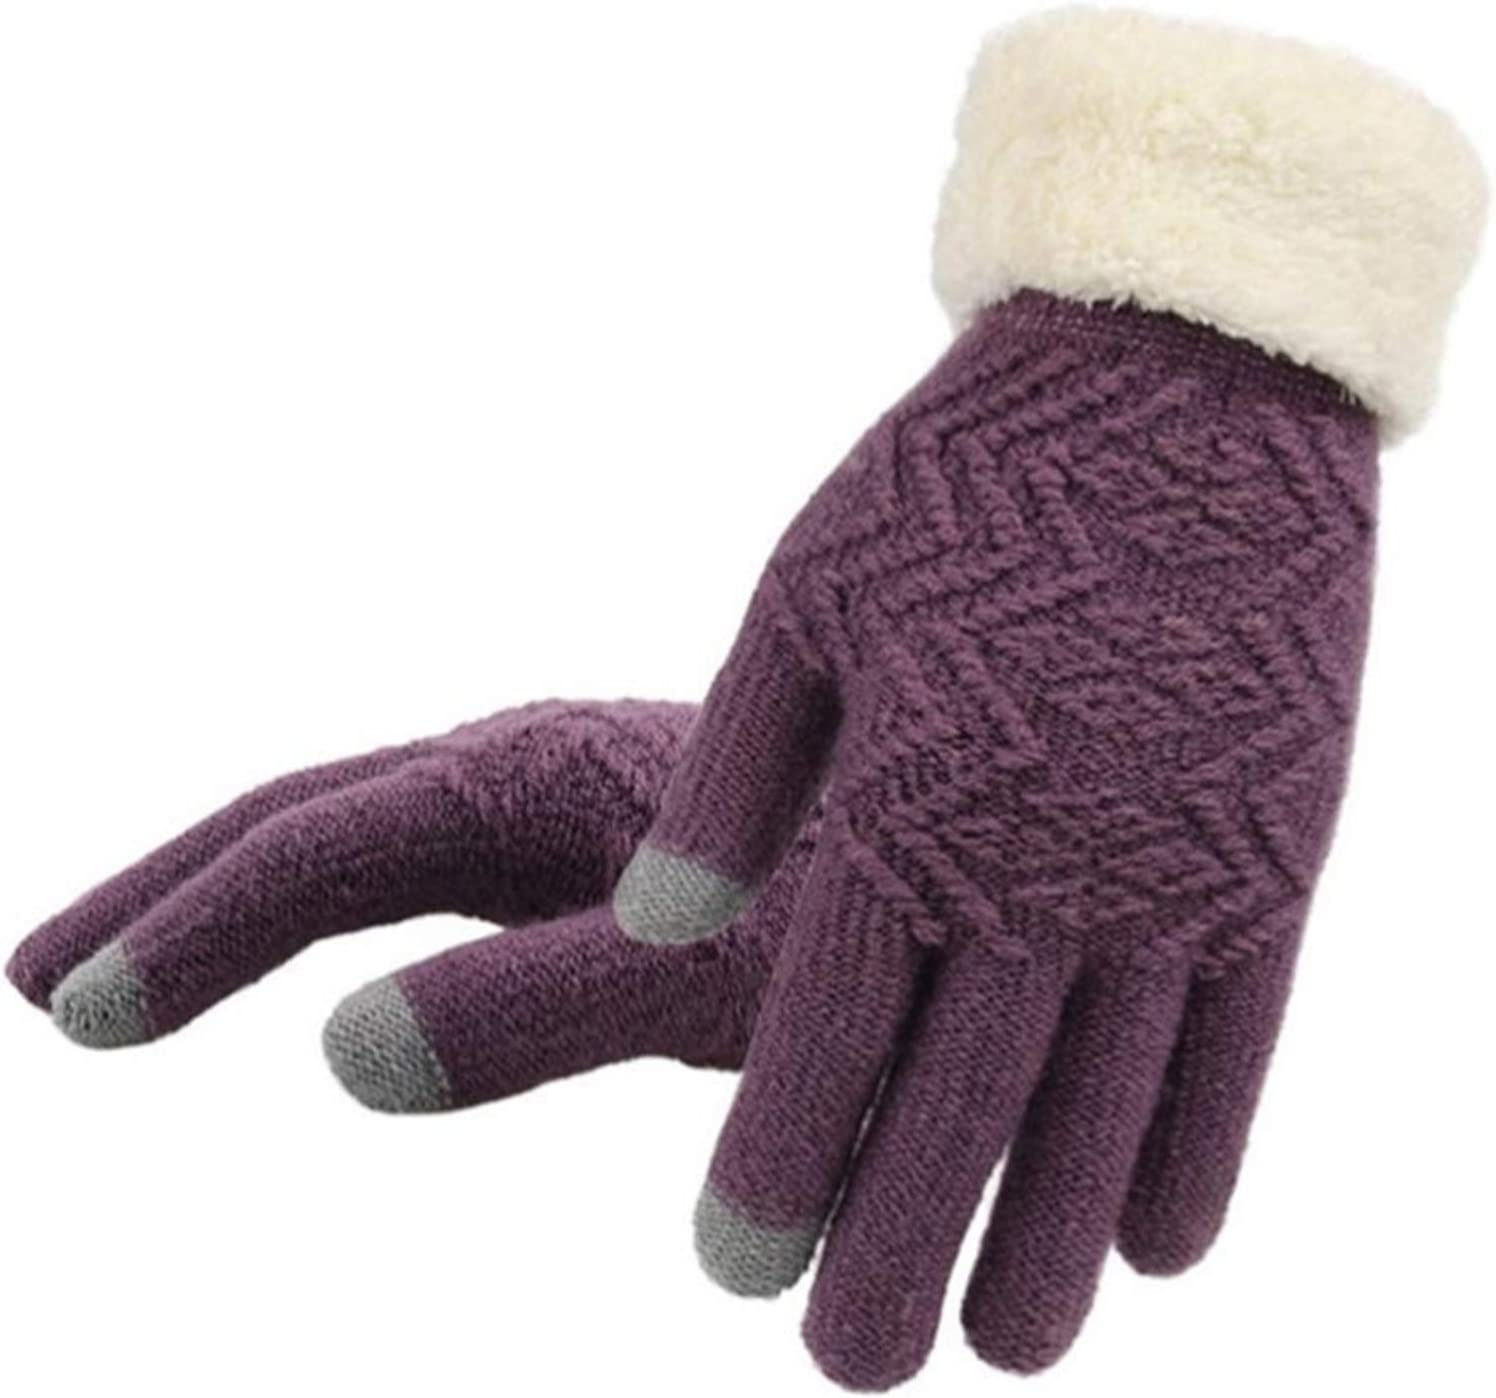 DZHT Winter Touch Screen Knitted Gloves Women Knit Gloves Mittens Female Thick Plush Wrist Driving Glove (Color : Purple, Gloves Size : Free Size)